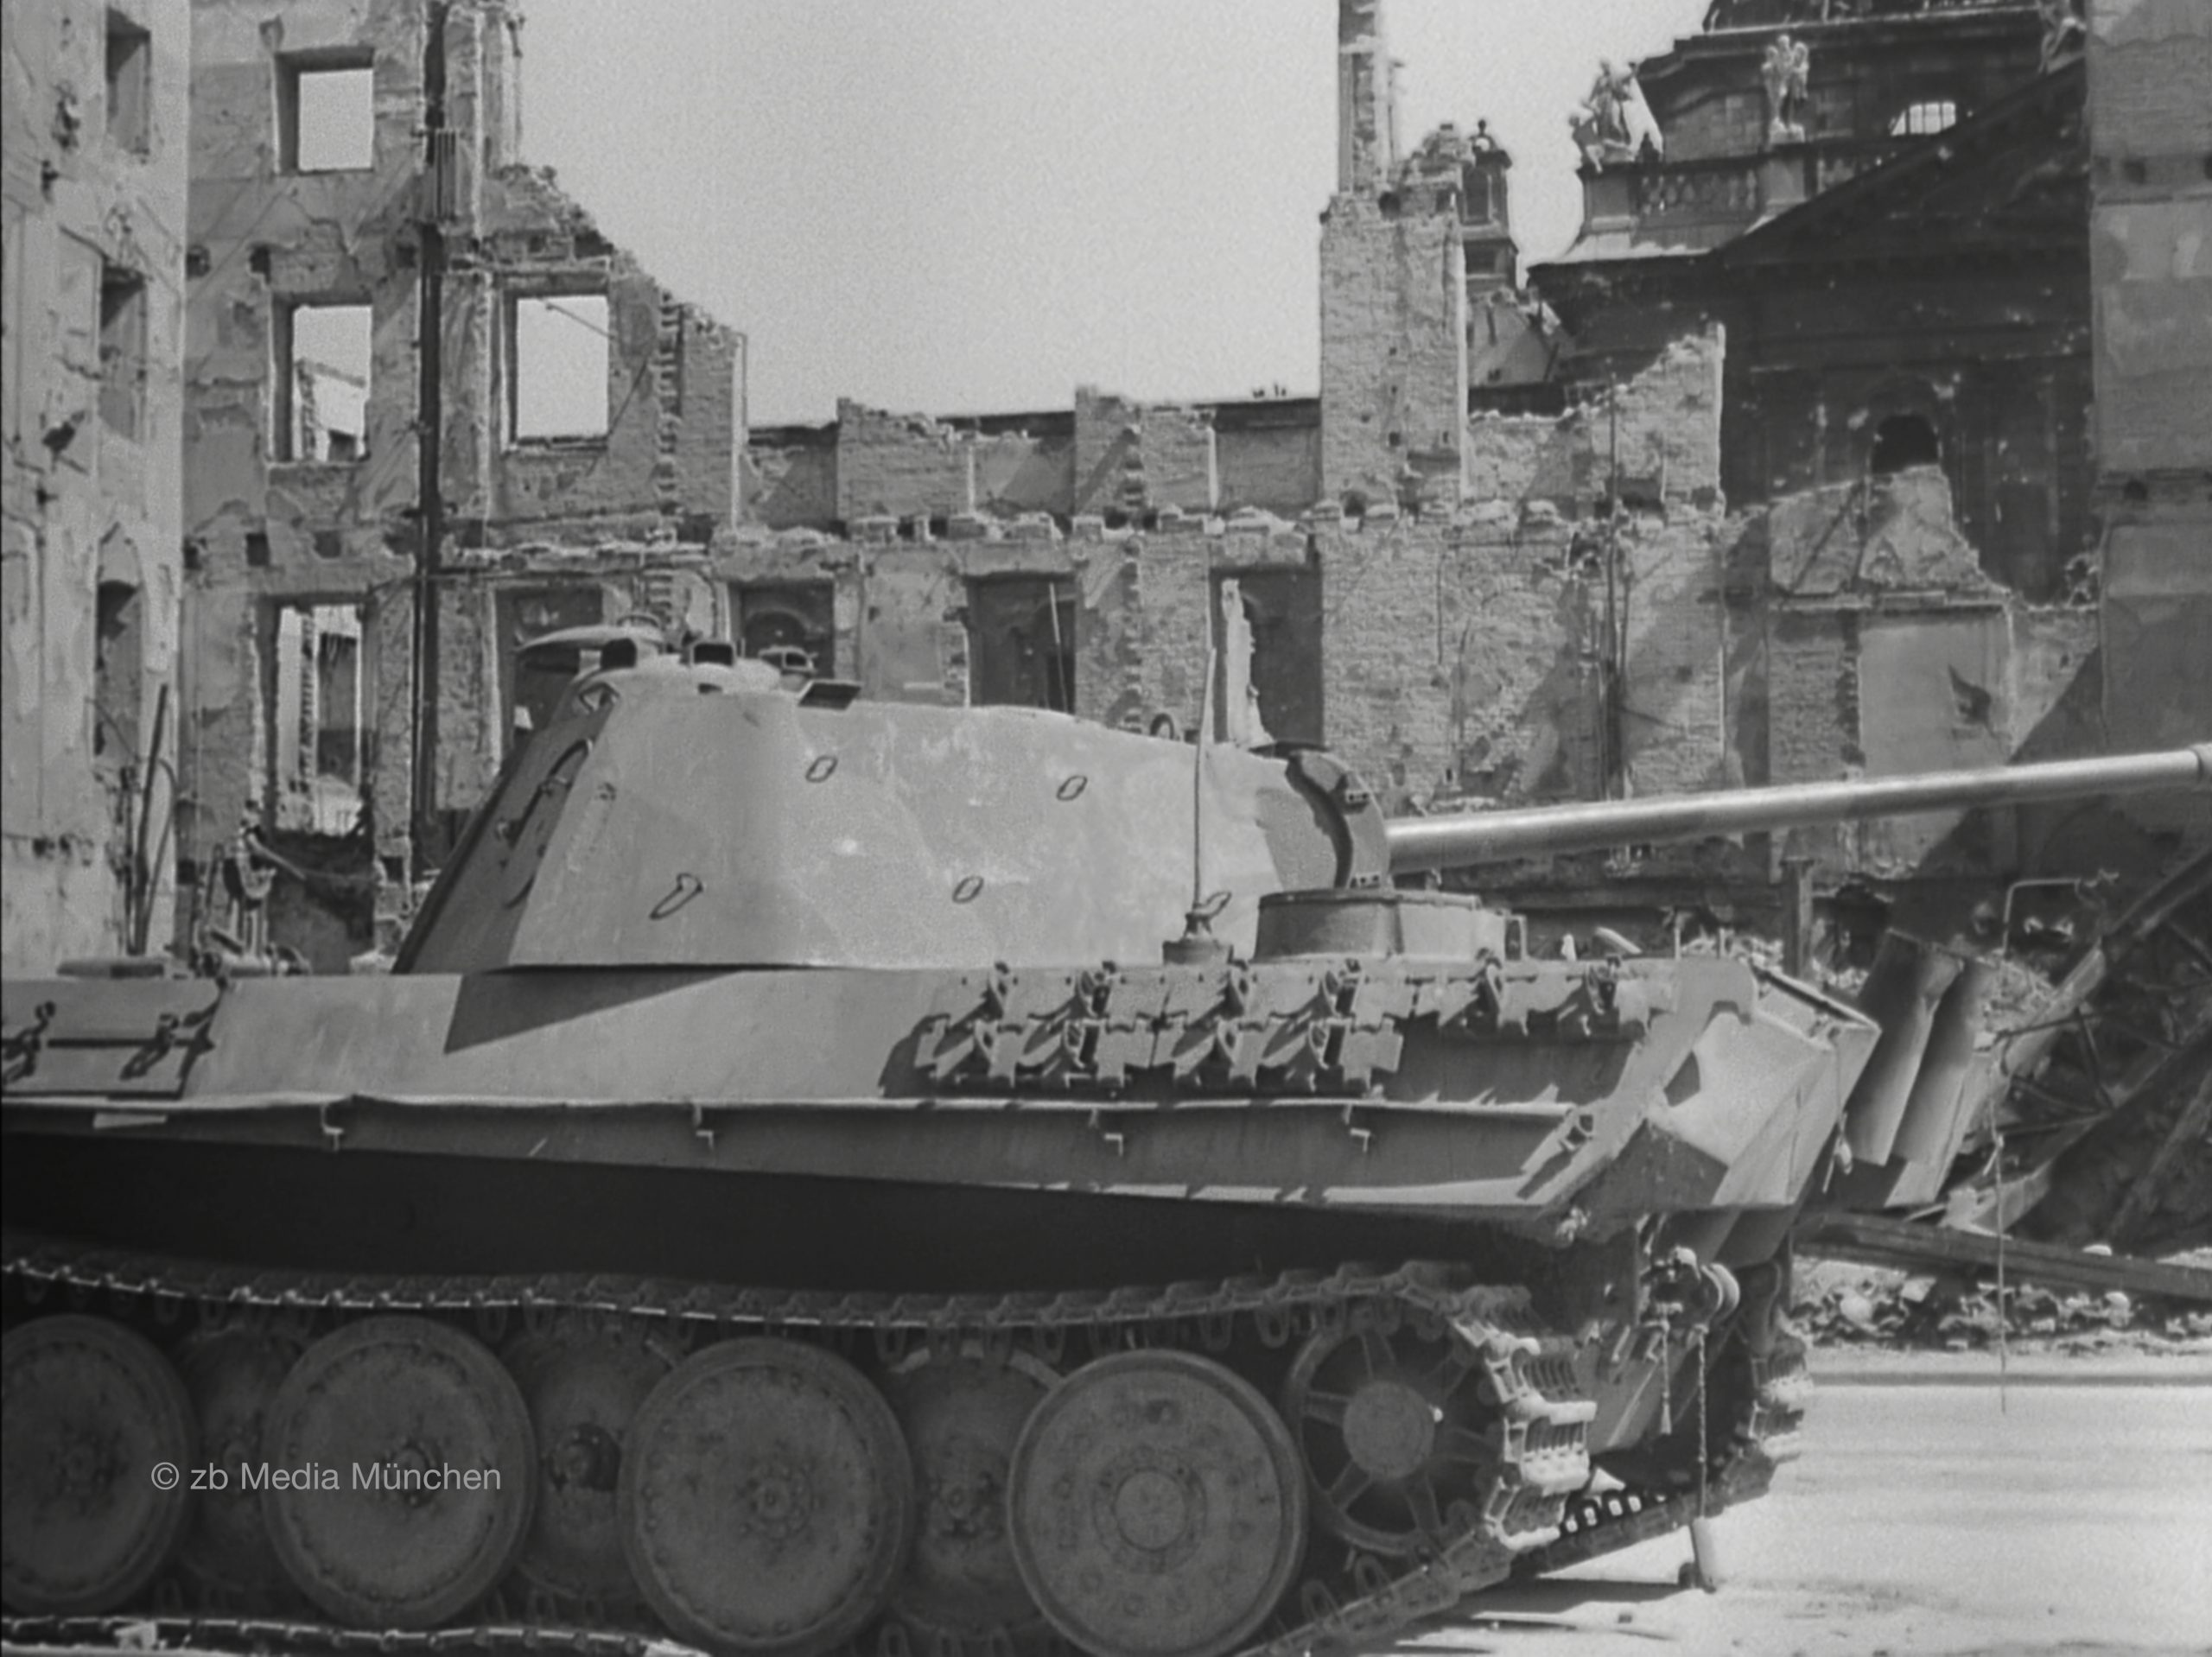 Panther Panzer am Stachus, München 5. Mai 1945. Close